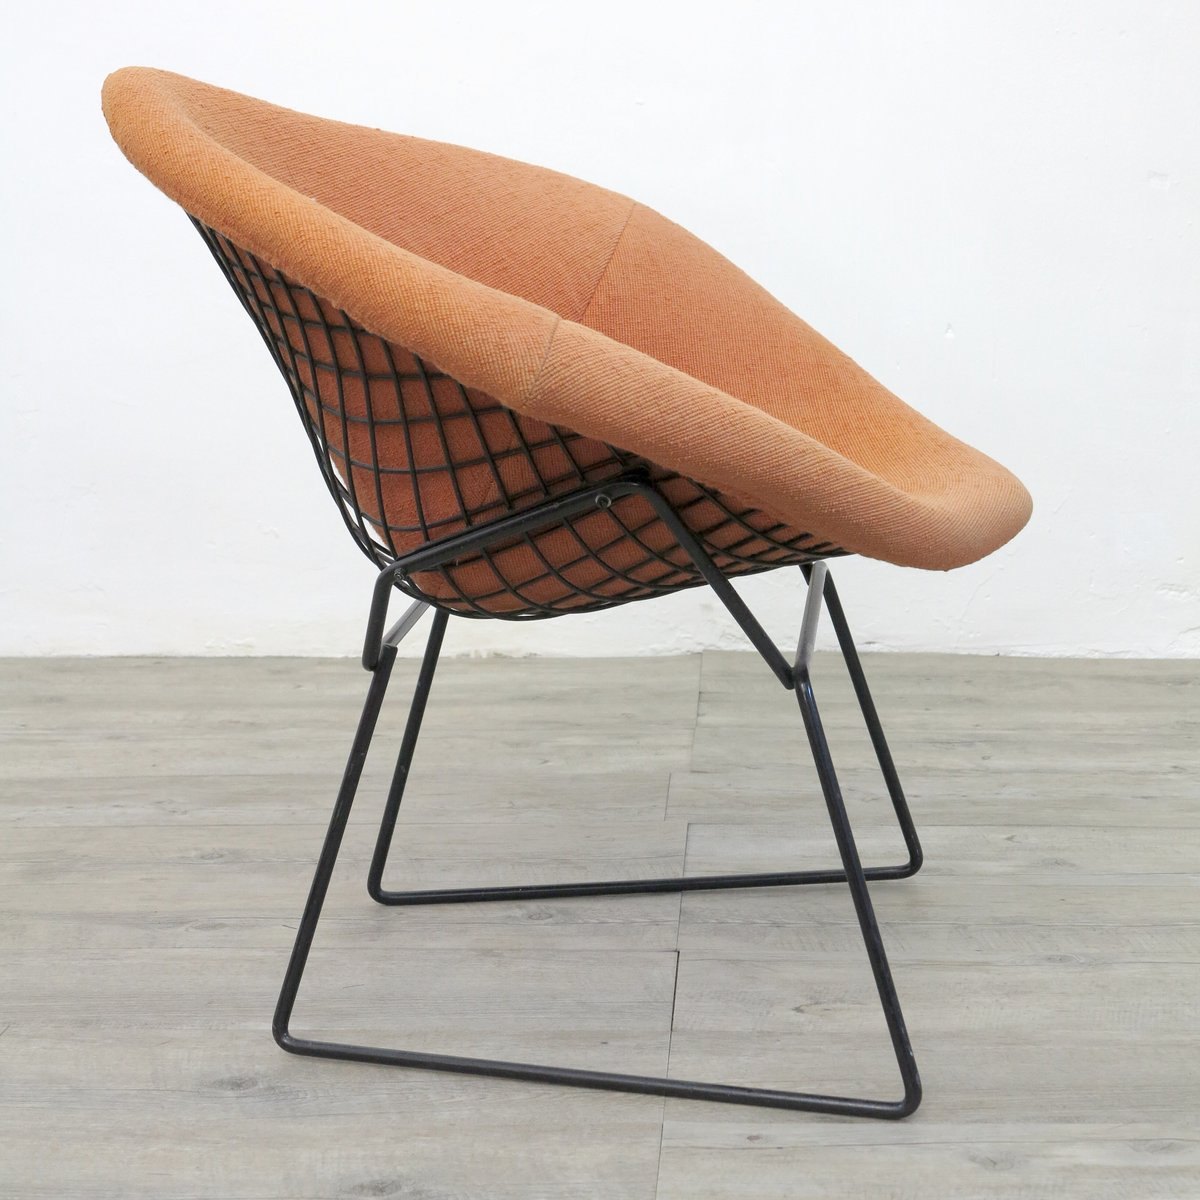 chaise bertoia prix random image of bertoia chaise. Black Bedroom Furniture Sets. Home Design Ideas